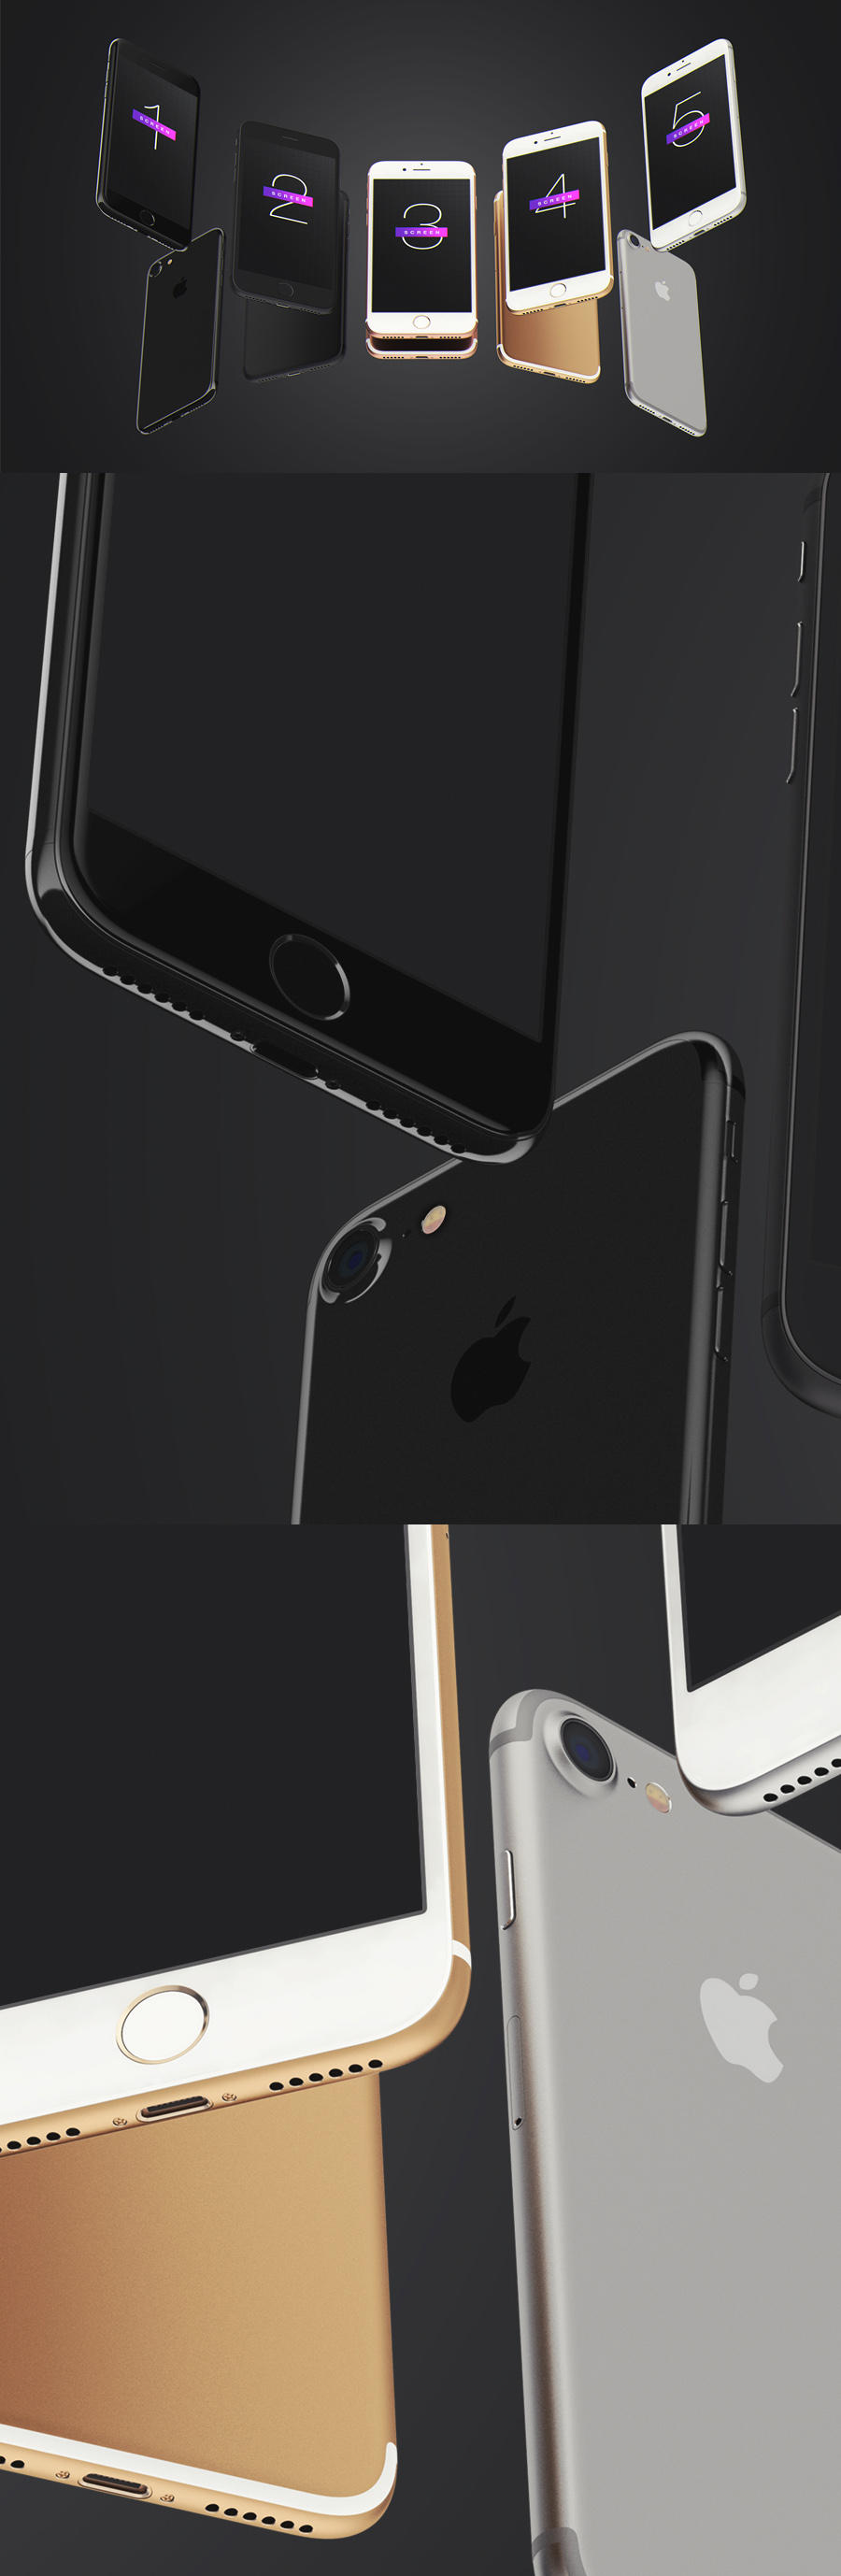 Free iPhone 7 UI Mockup